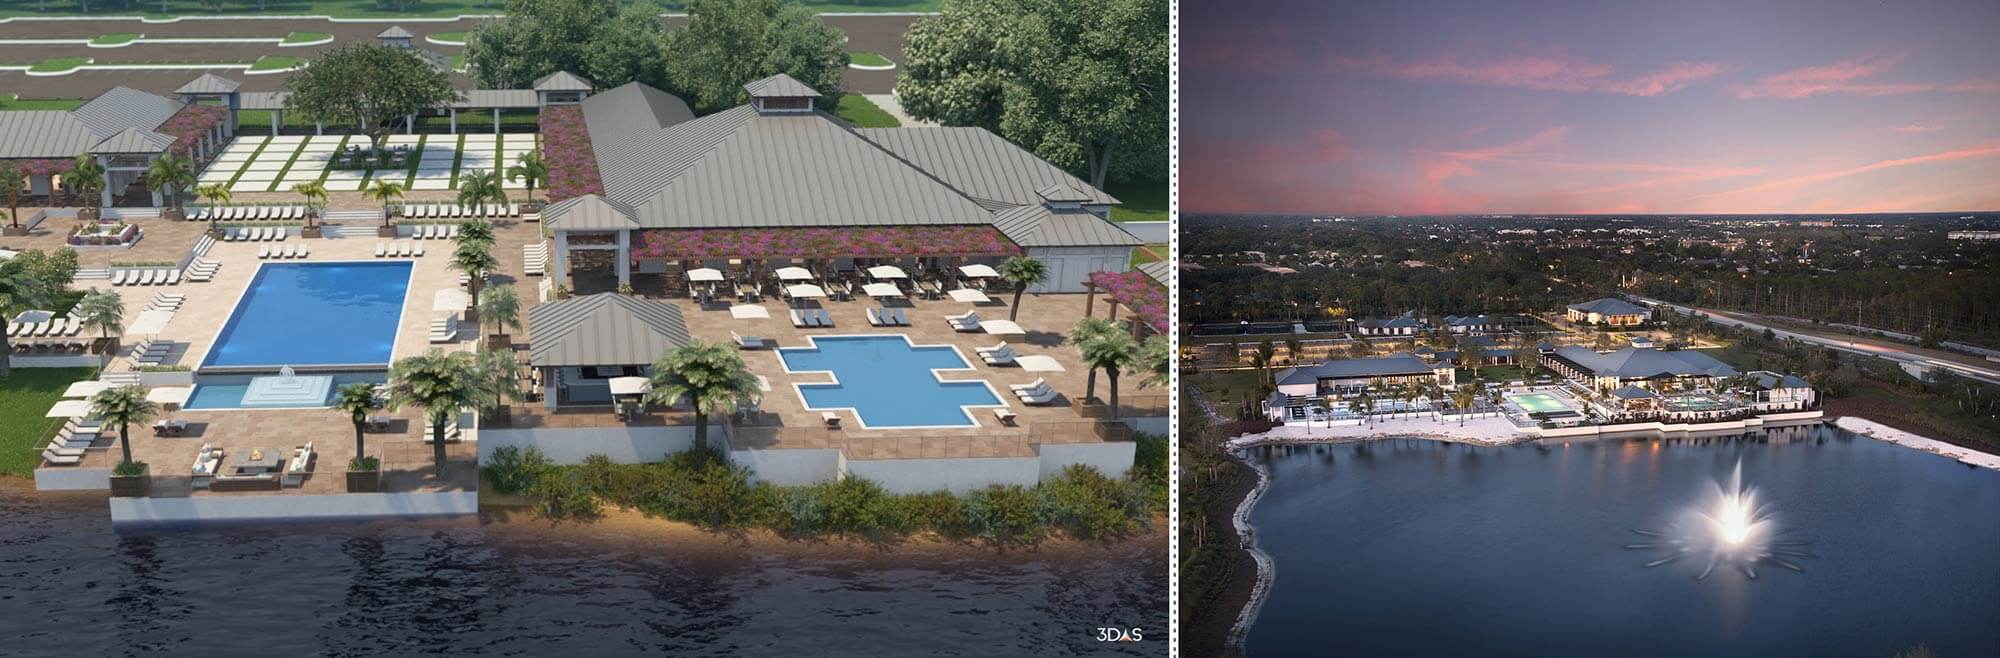 Kalea Bay Aerial Clubhouse 3D Rendering (Left) and Photo (Right)